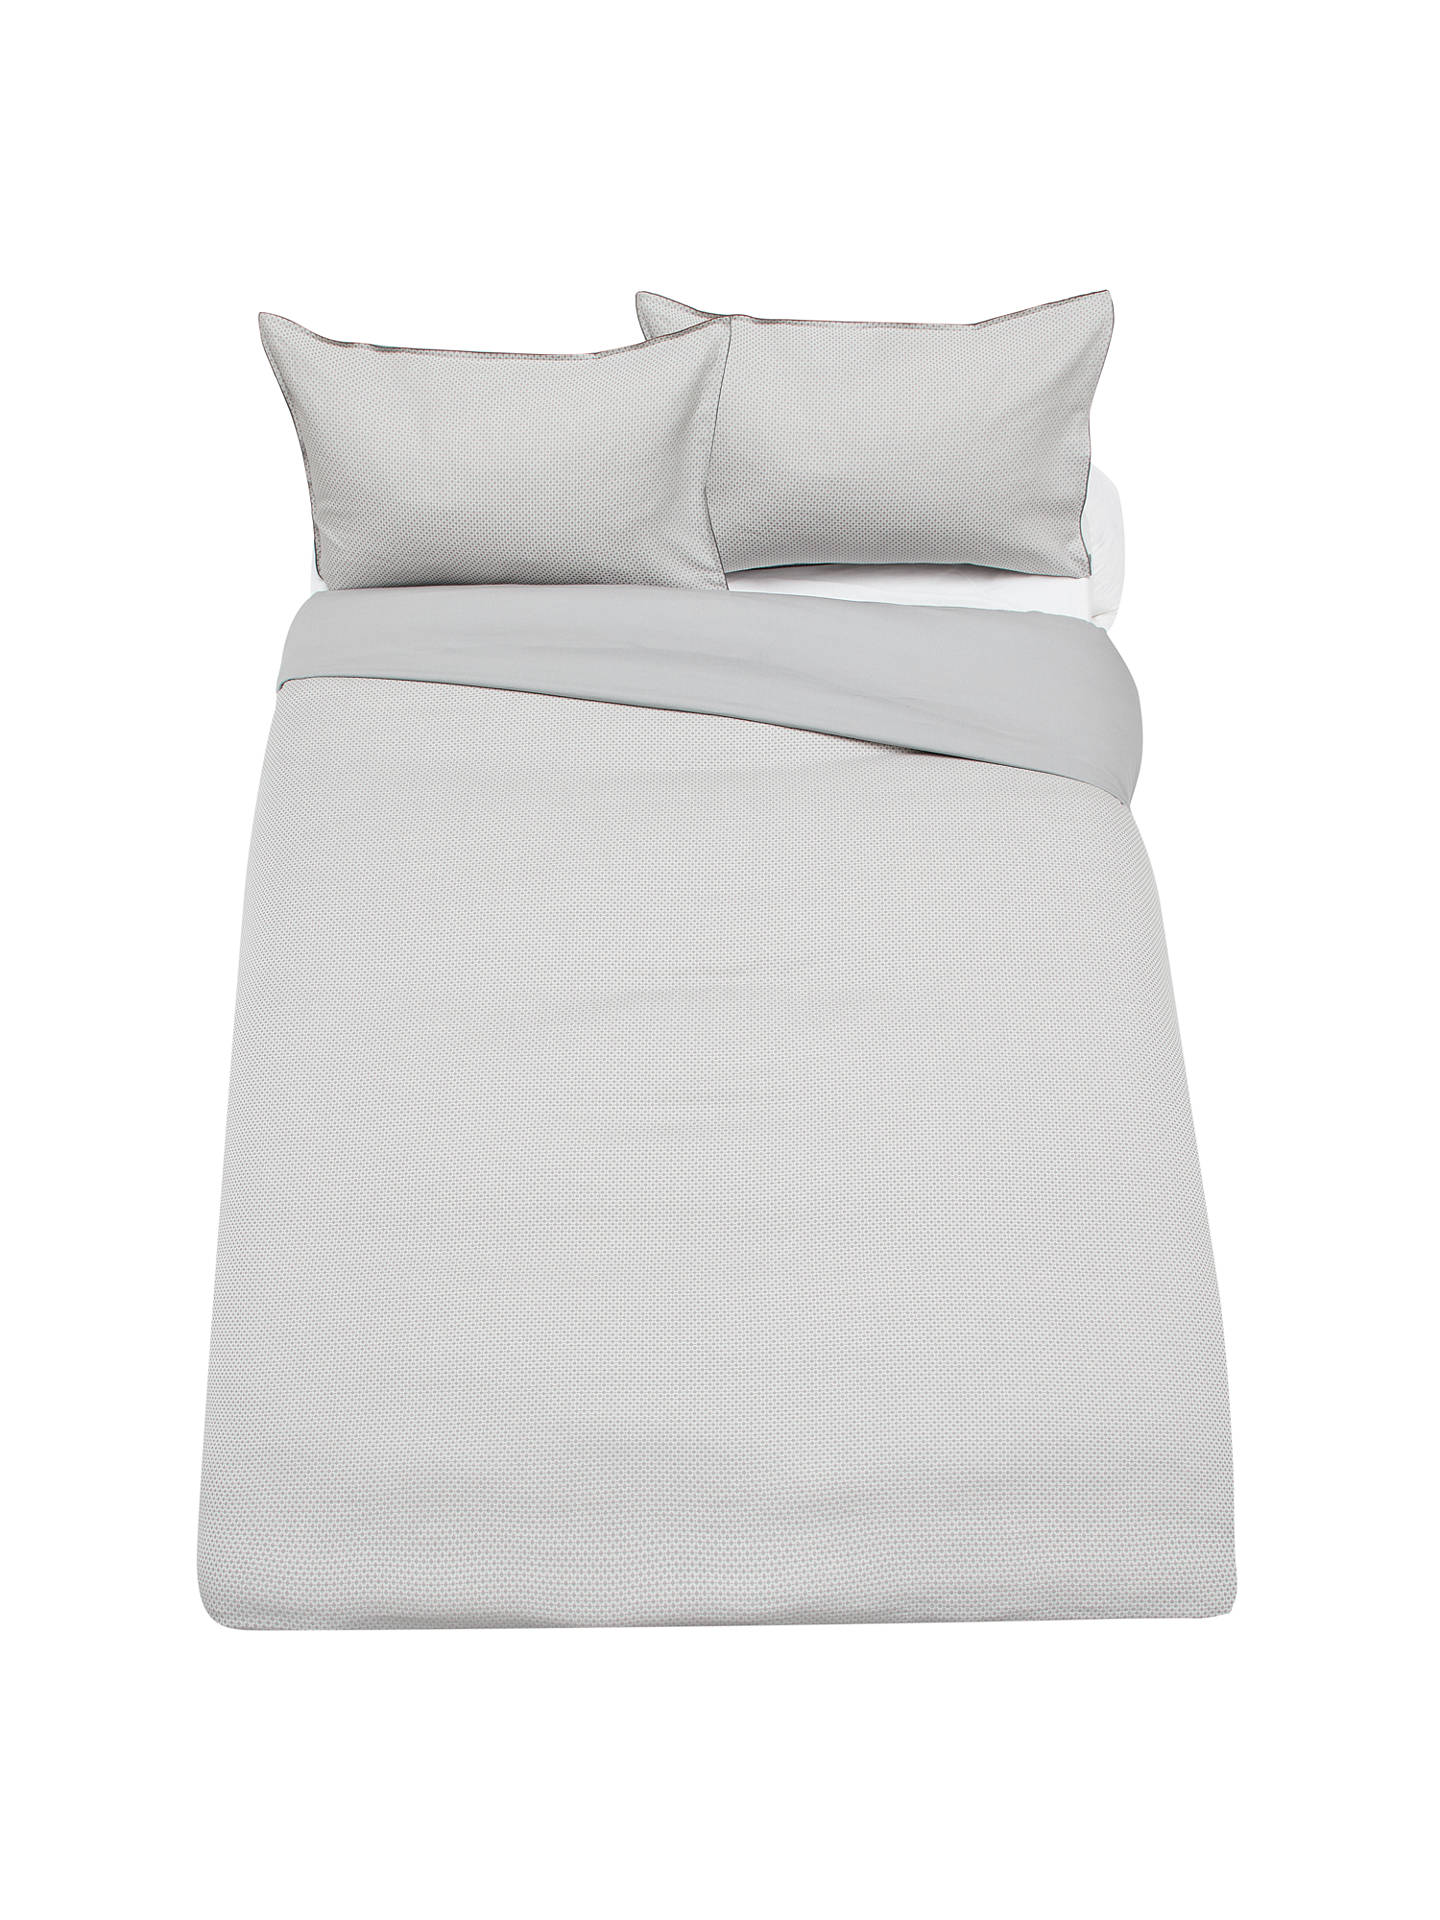 Buy John Lewis & Partners Textured and Decorative  Vienna Oxford Pillowcase, Grey Online at johnlewis.com